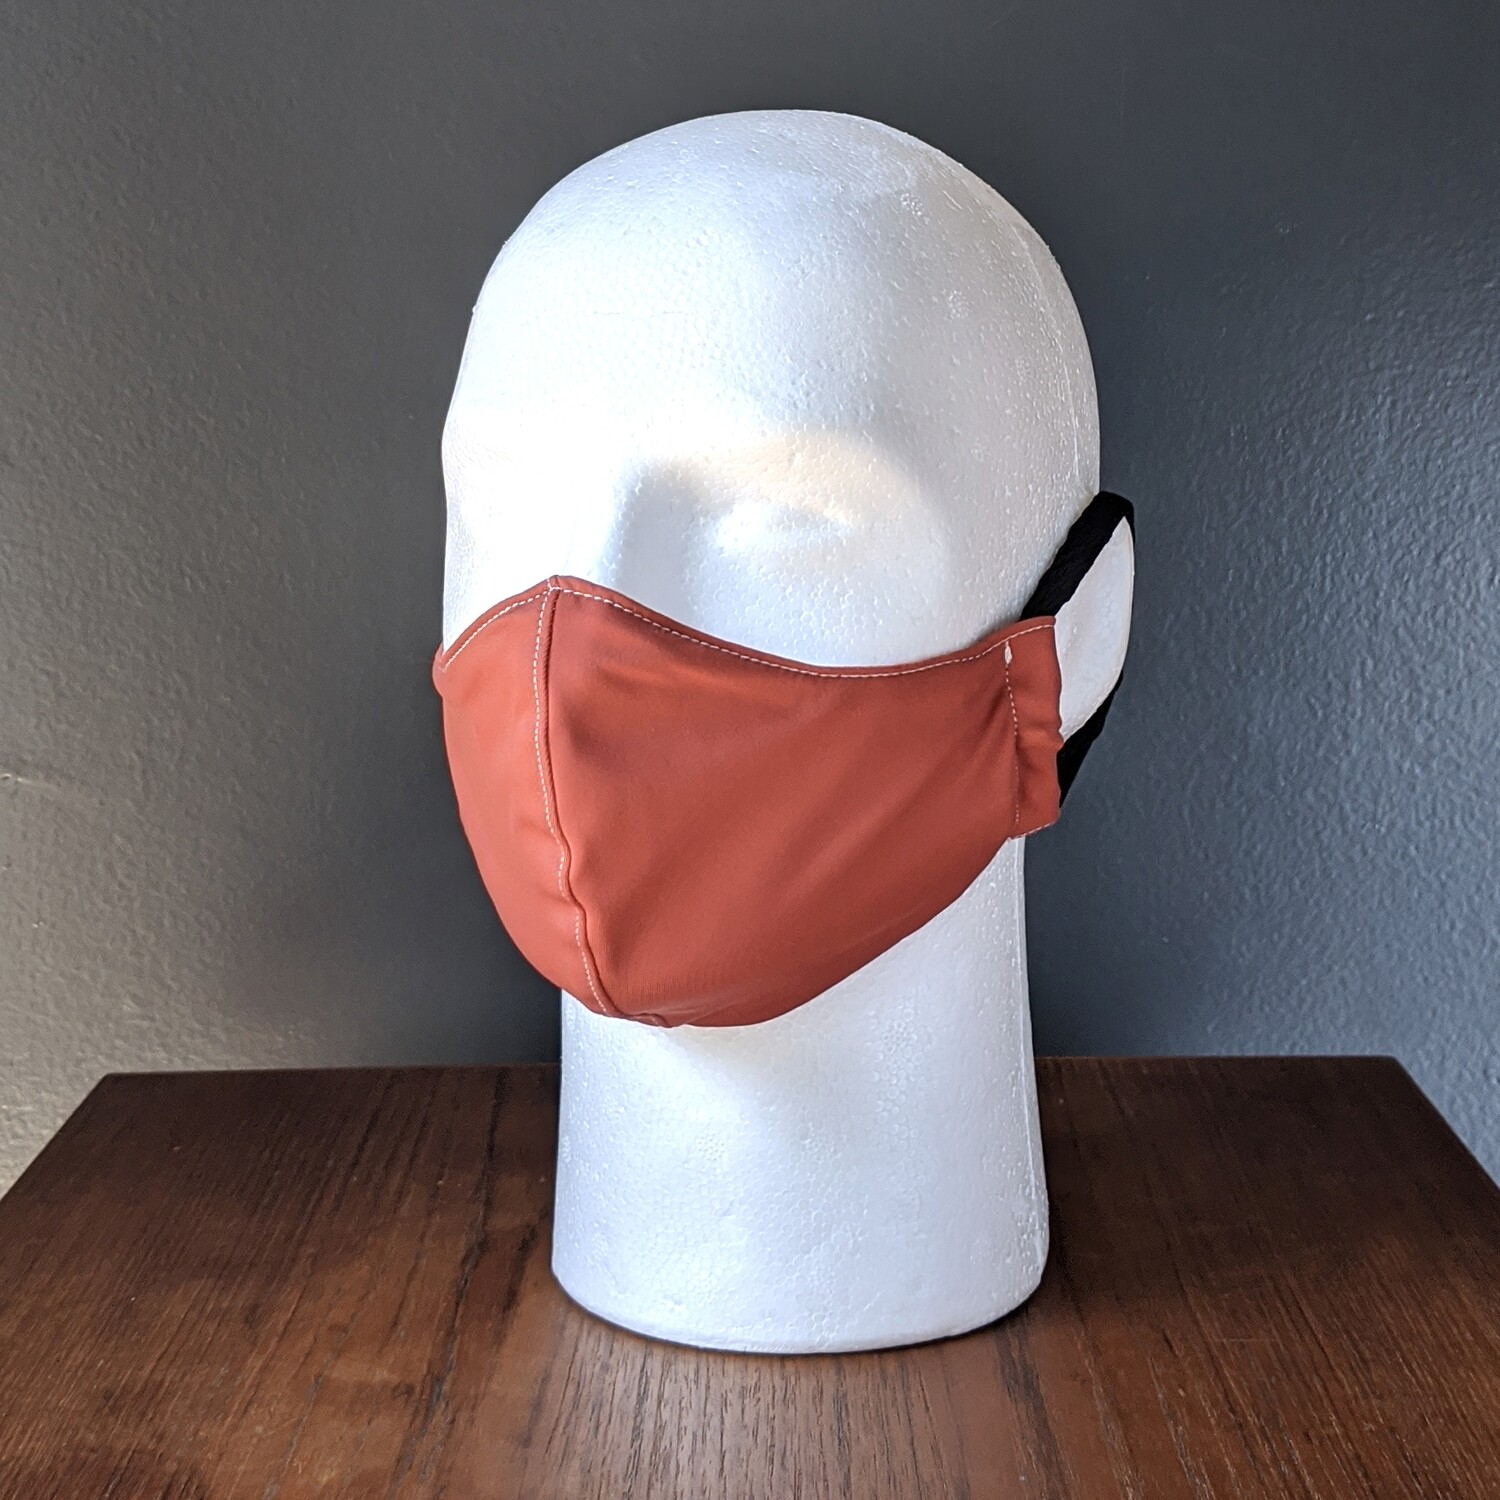 Rose Swimsuit Lycra Face Mask, Small, Unisex, Reusable, Double Layer for Swimming, Beach. Made in USA